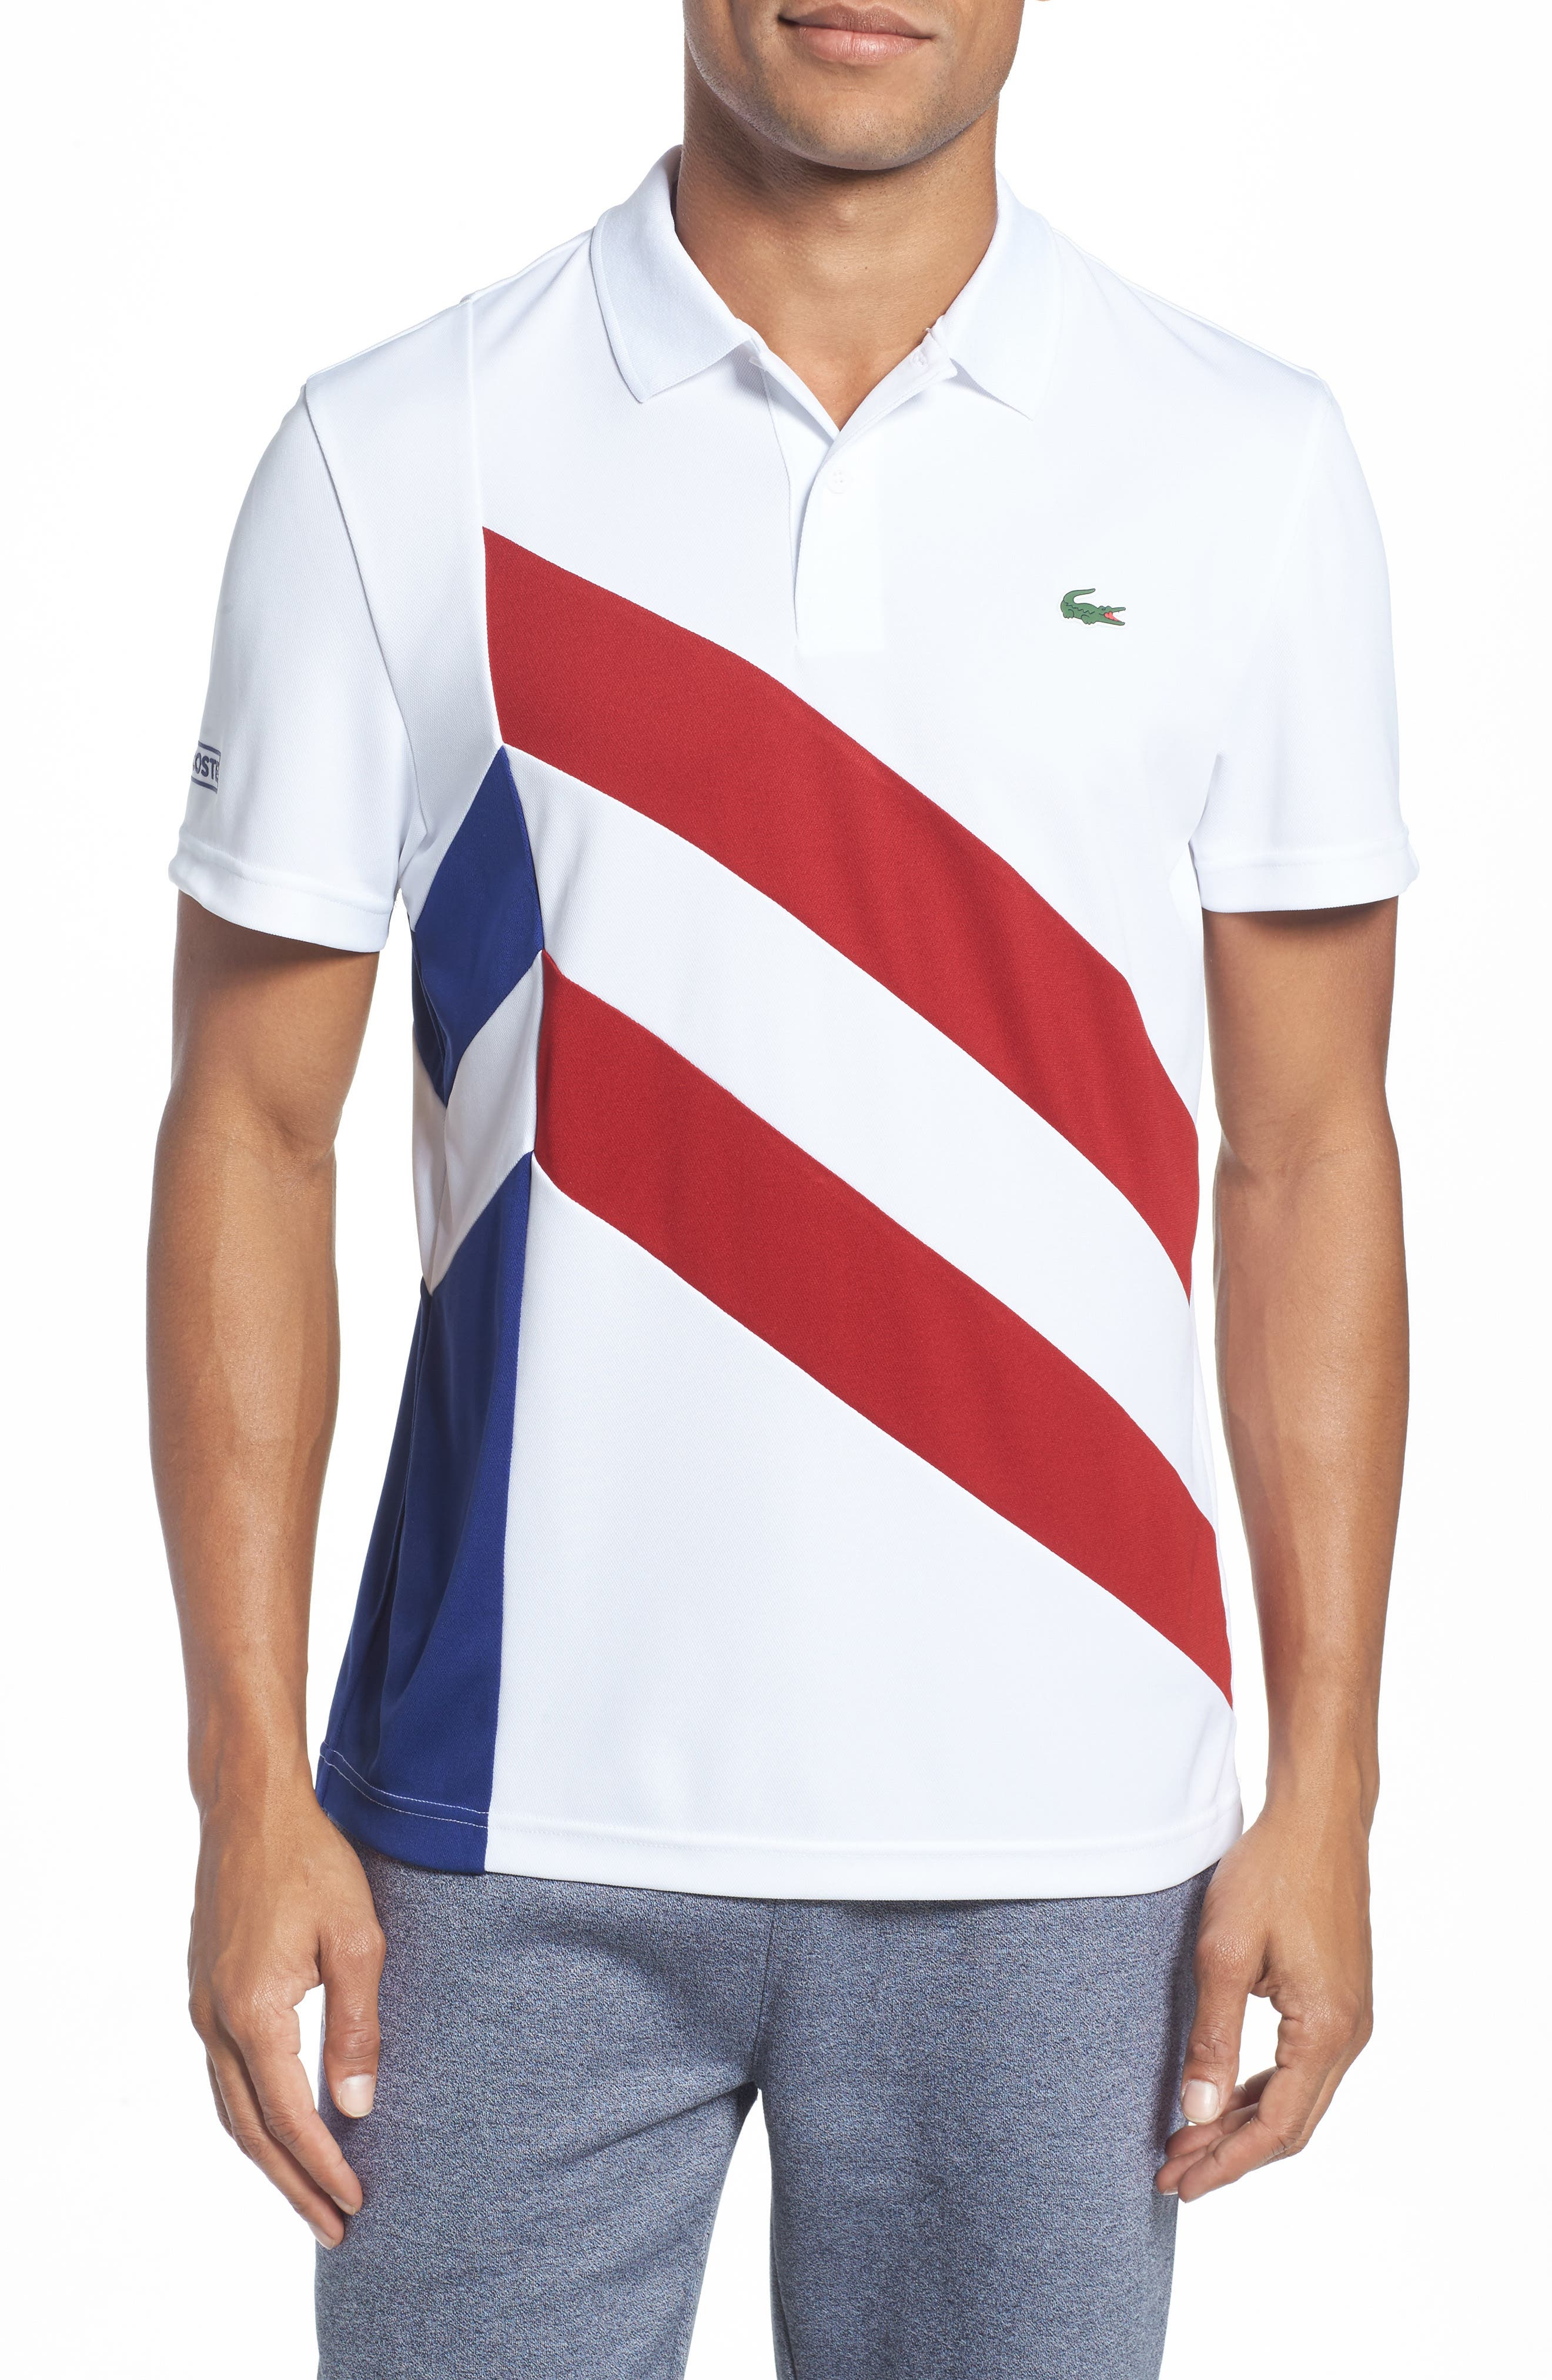 Main Image - Lacoste Asymmetrical Colorblocked Polo